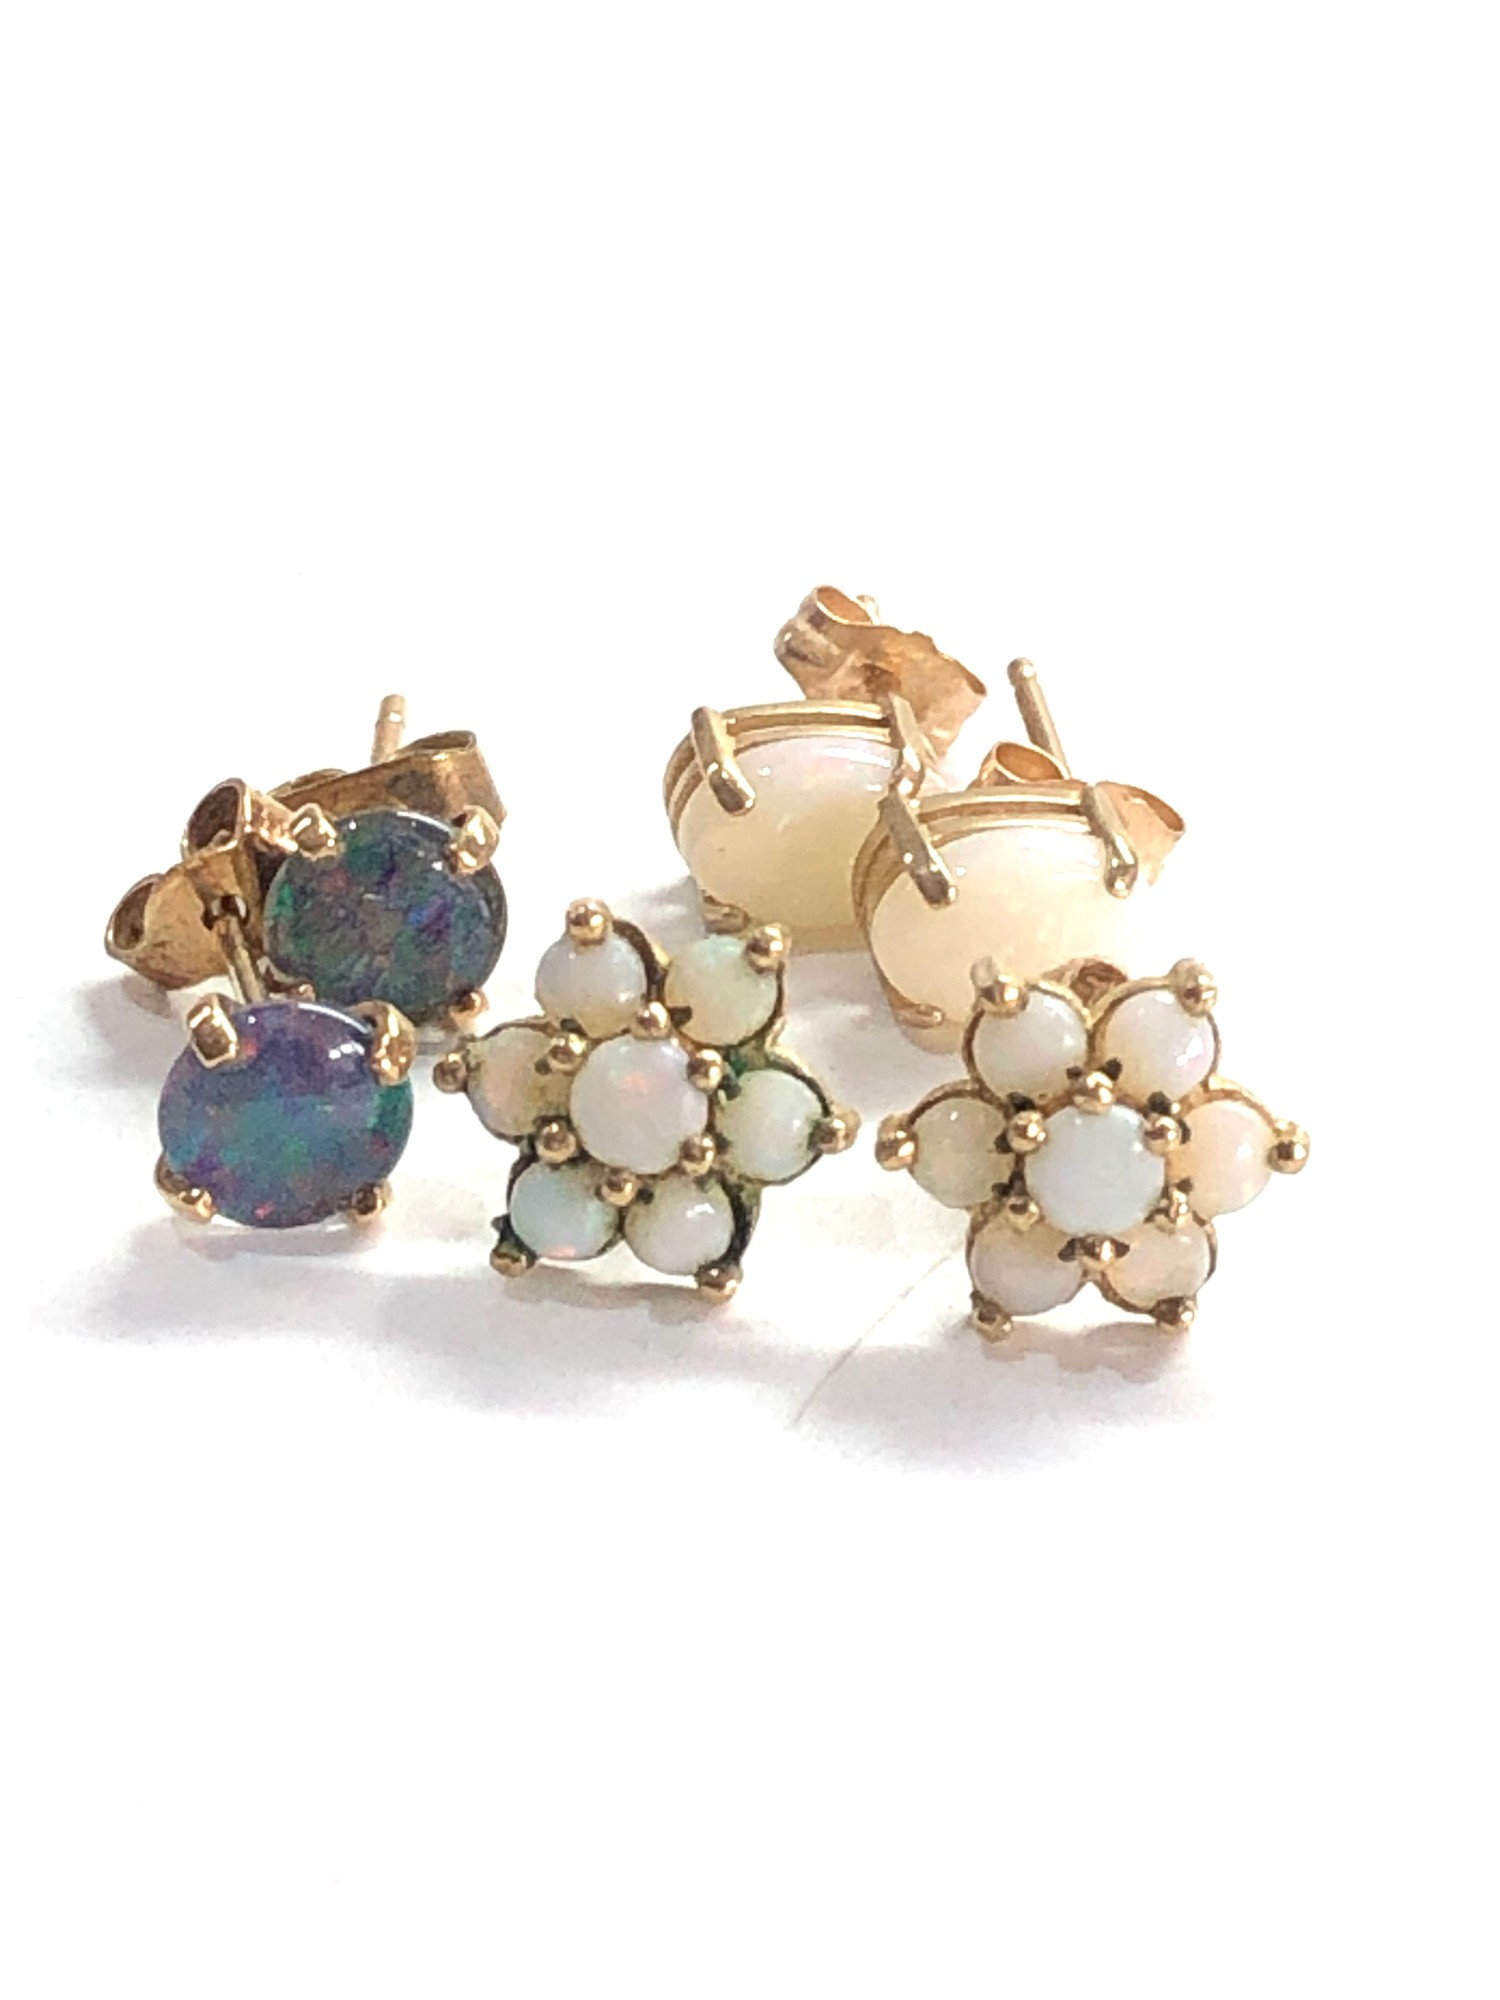 3 x 9ct gold opal earrings inc. studs, cluster - Image 3 of 3